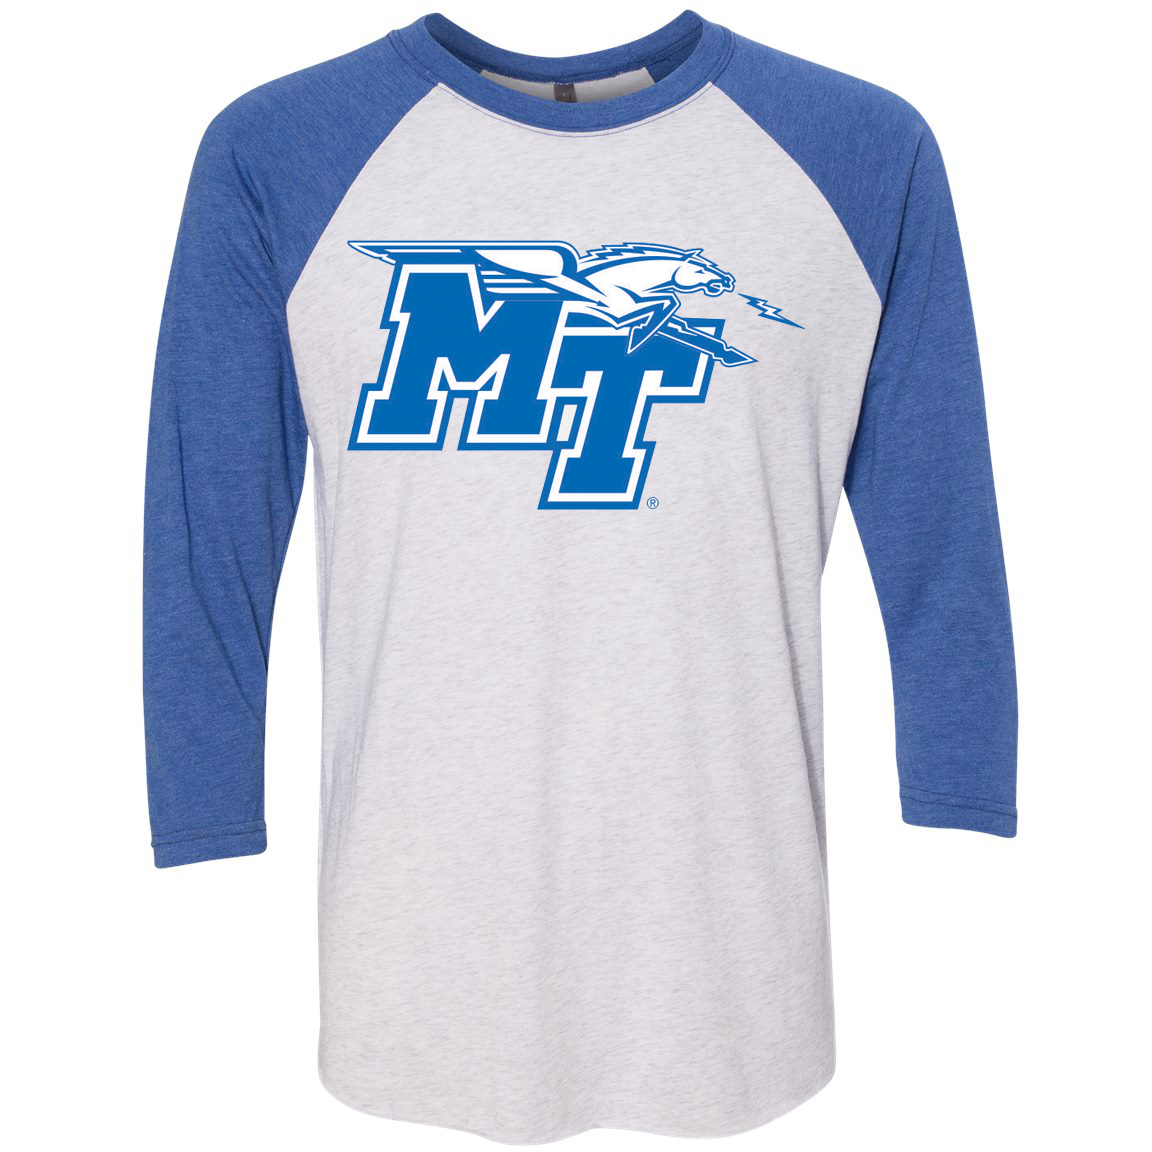 MT Logo w/ Lightning Raglan 3/4 Sleeve Shirt